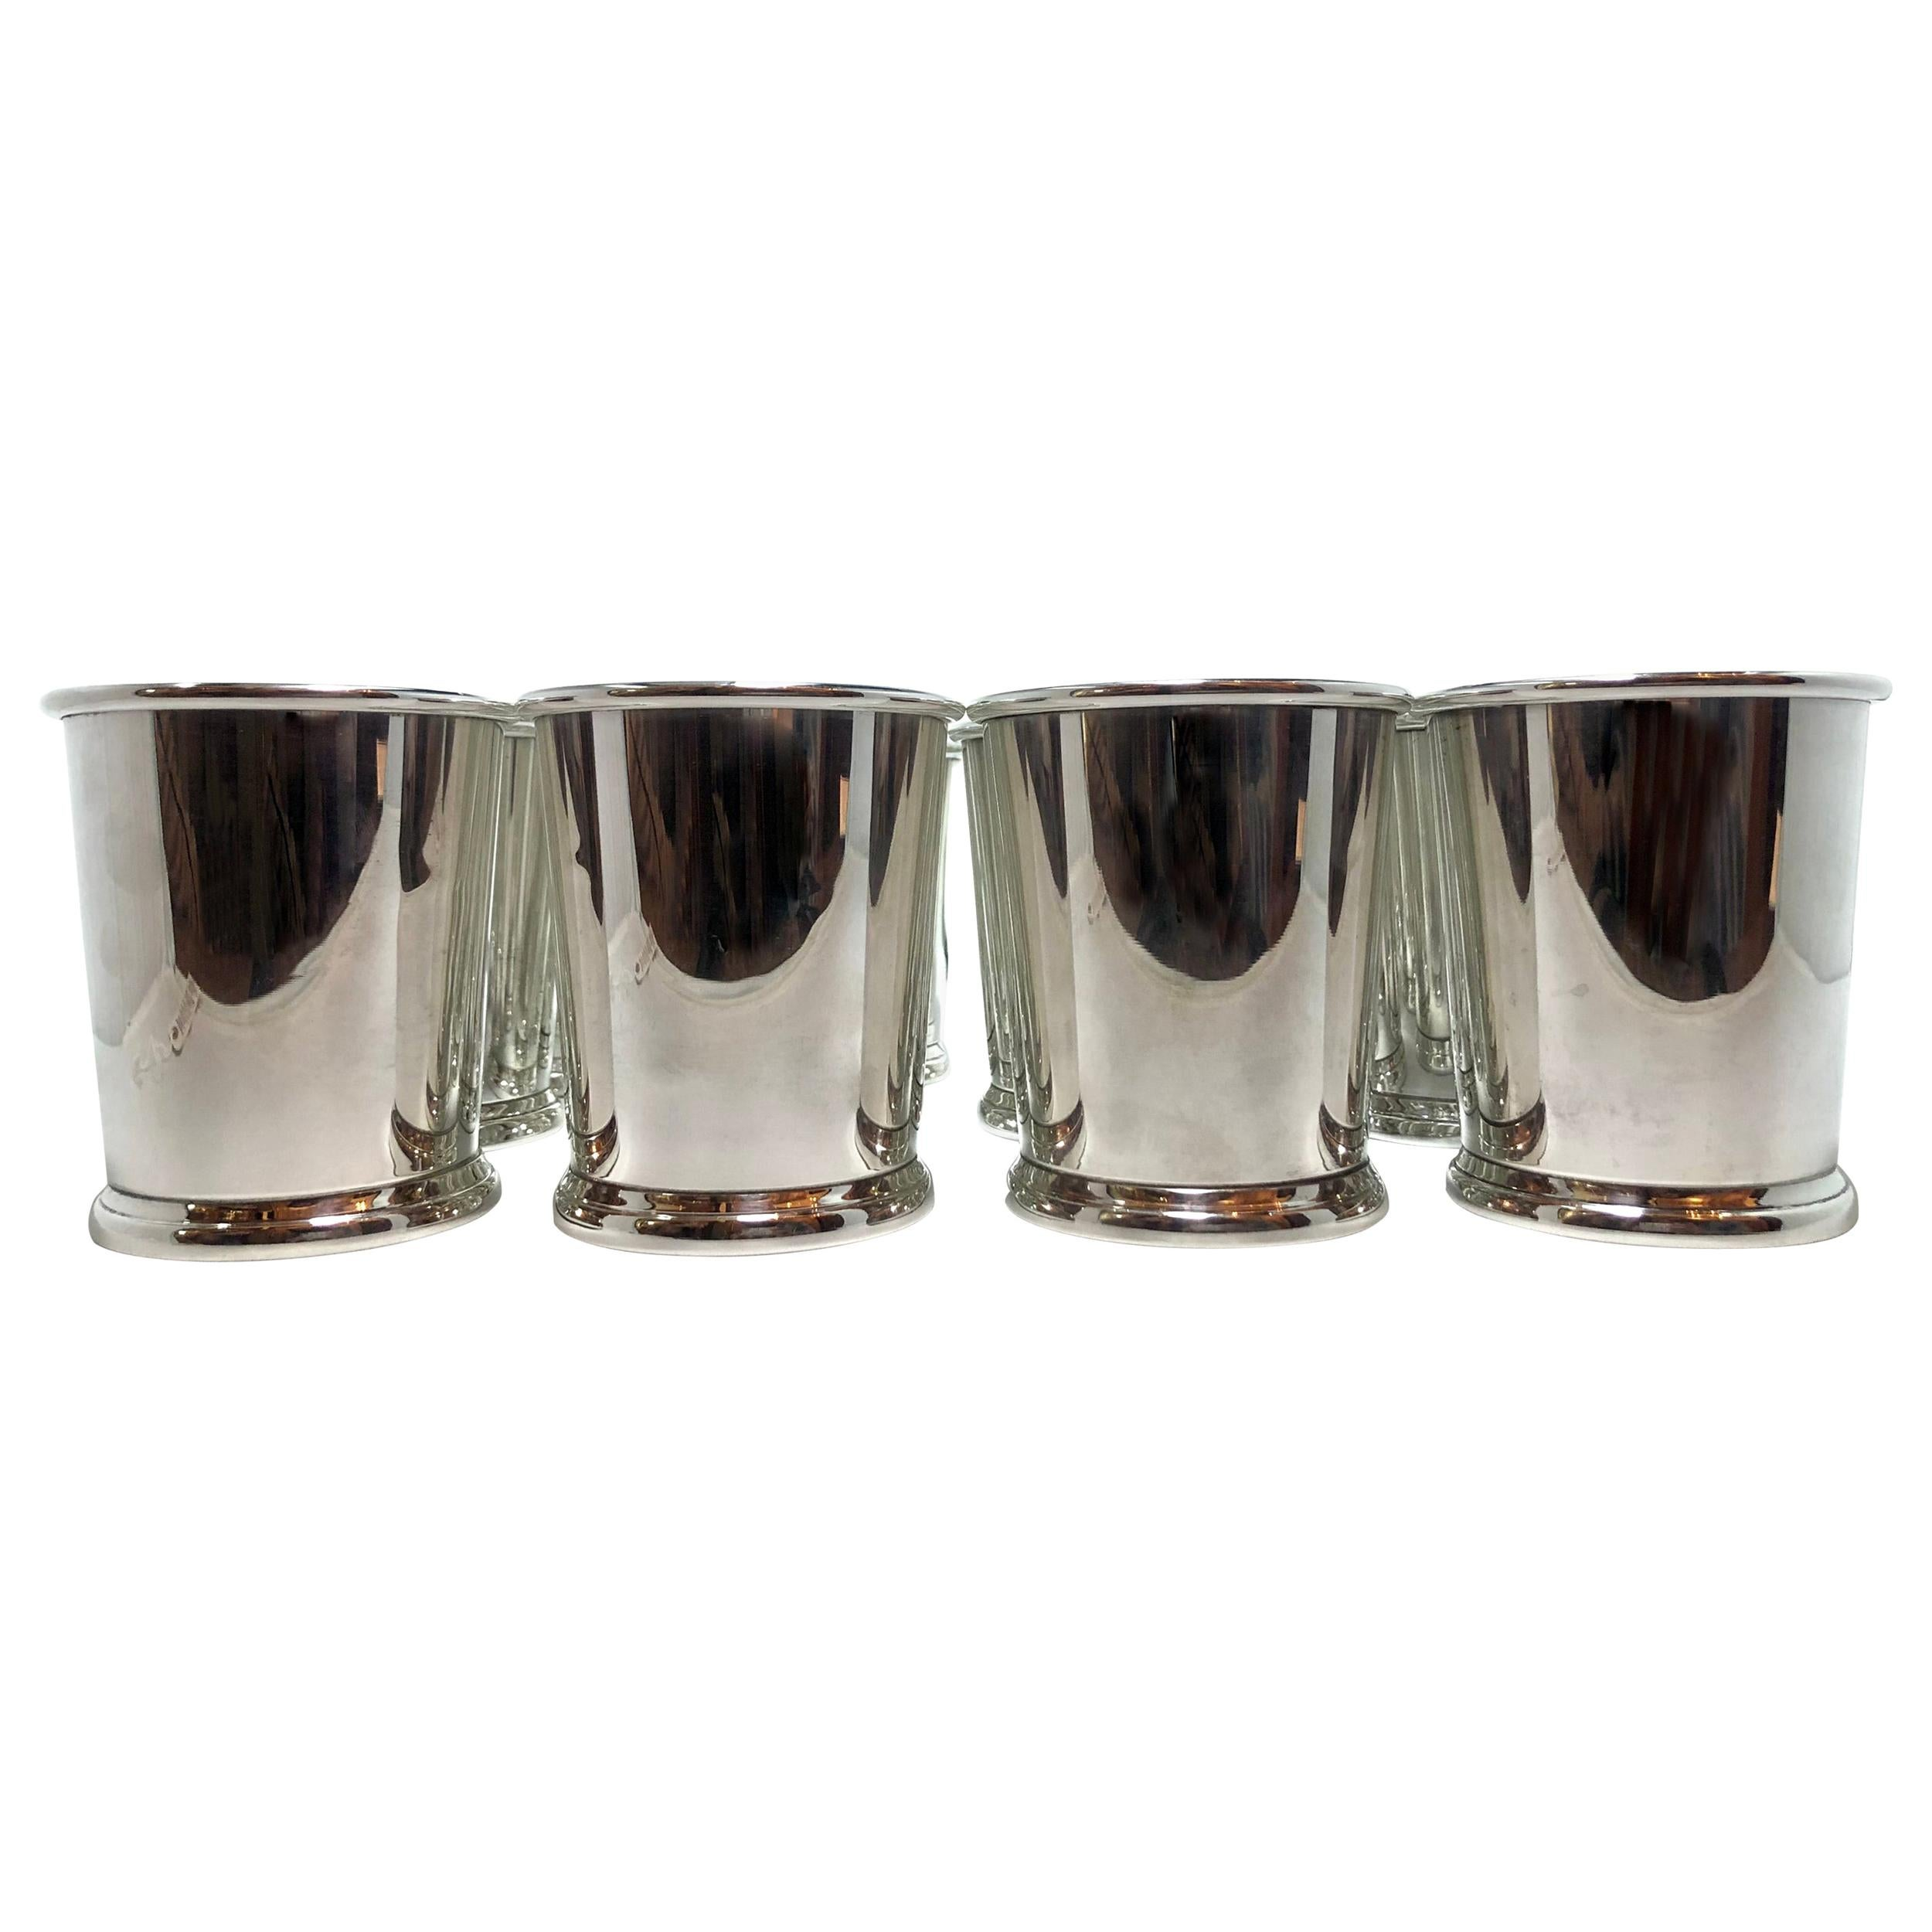 Set of 12 Estate Sterling Silver Mint Julep Cups, Hallmarked Web Silver Company